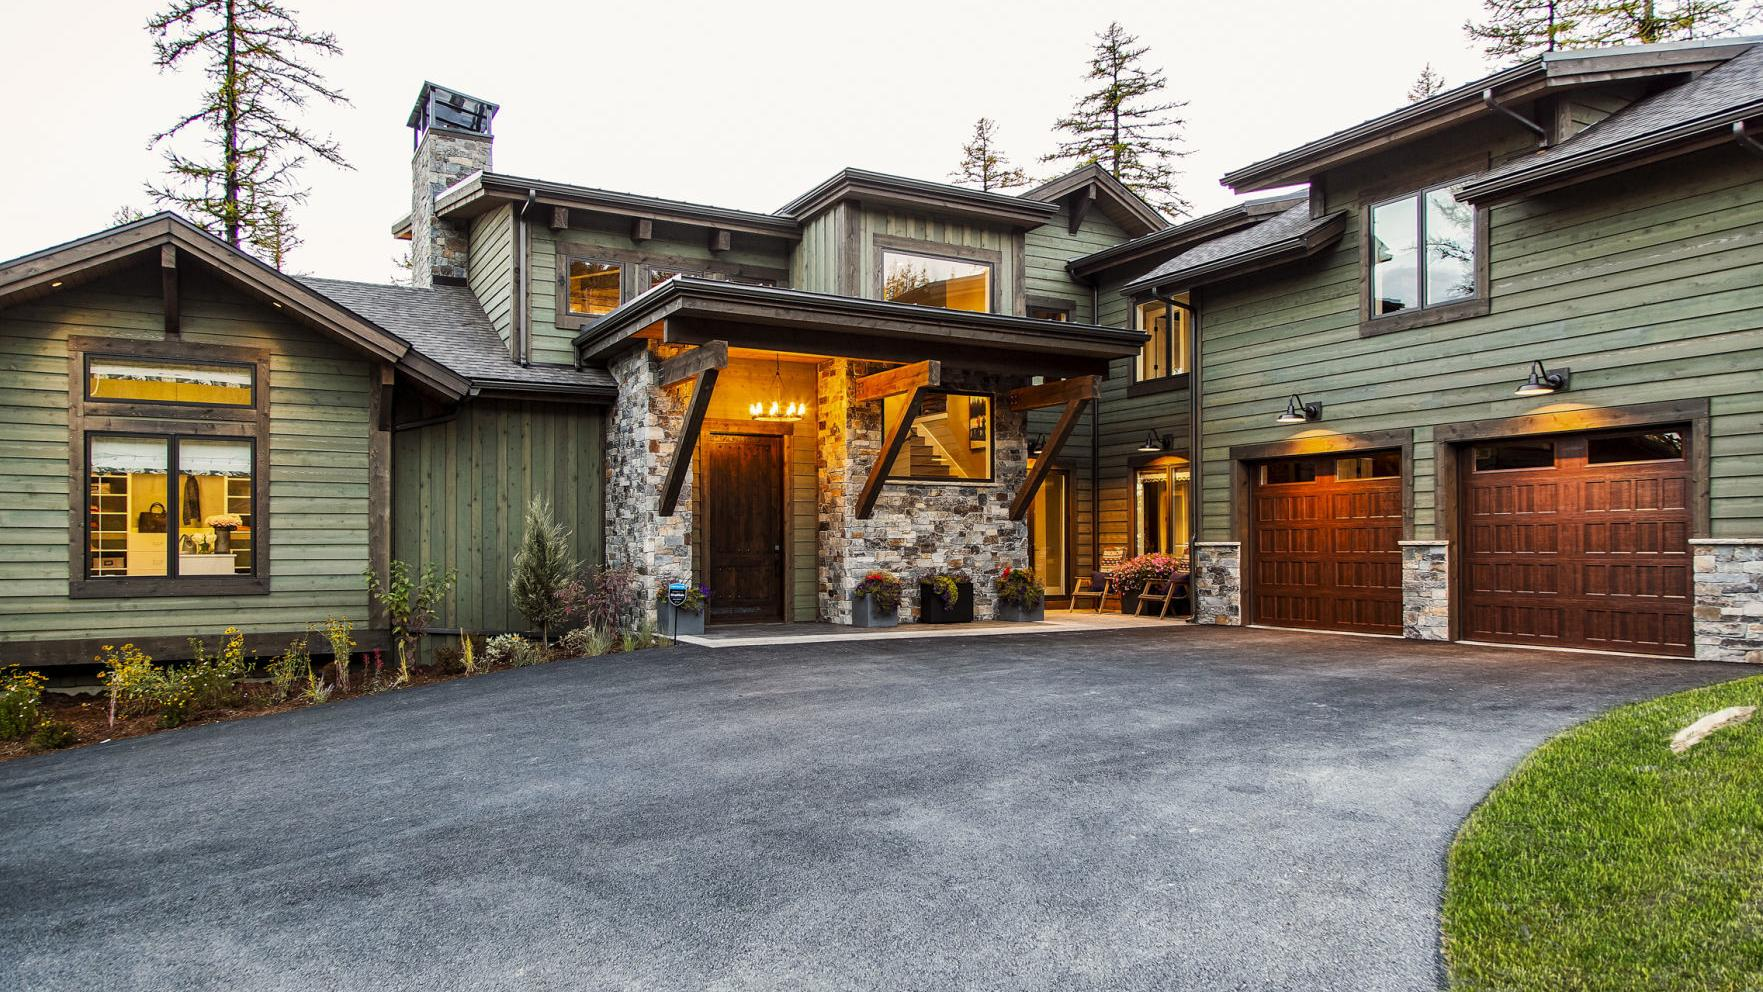 HGTV unveils Montana 'Dream Home' as part of $2.3M giveaway